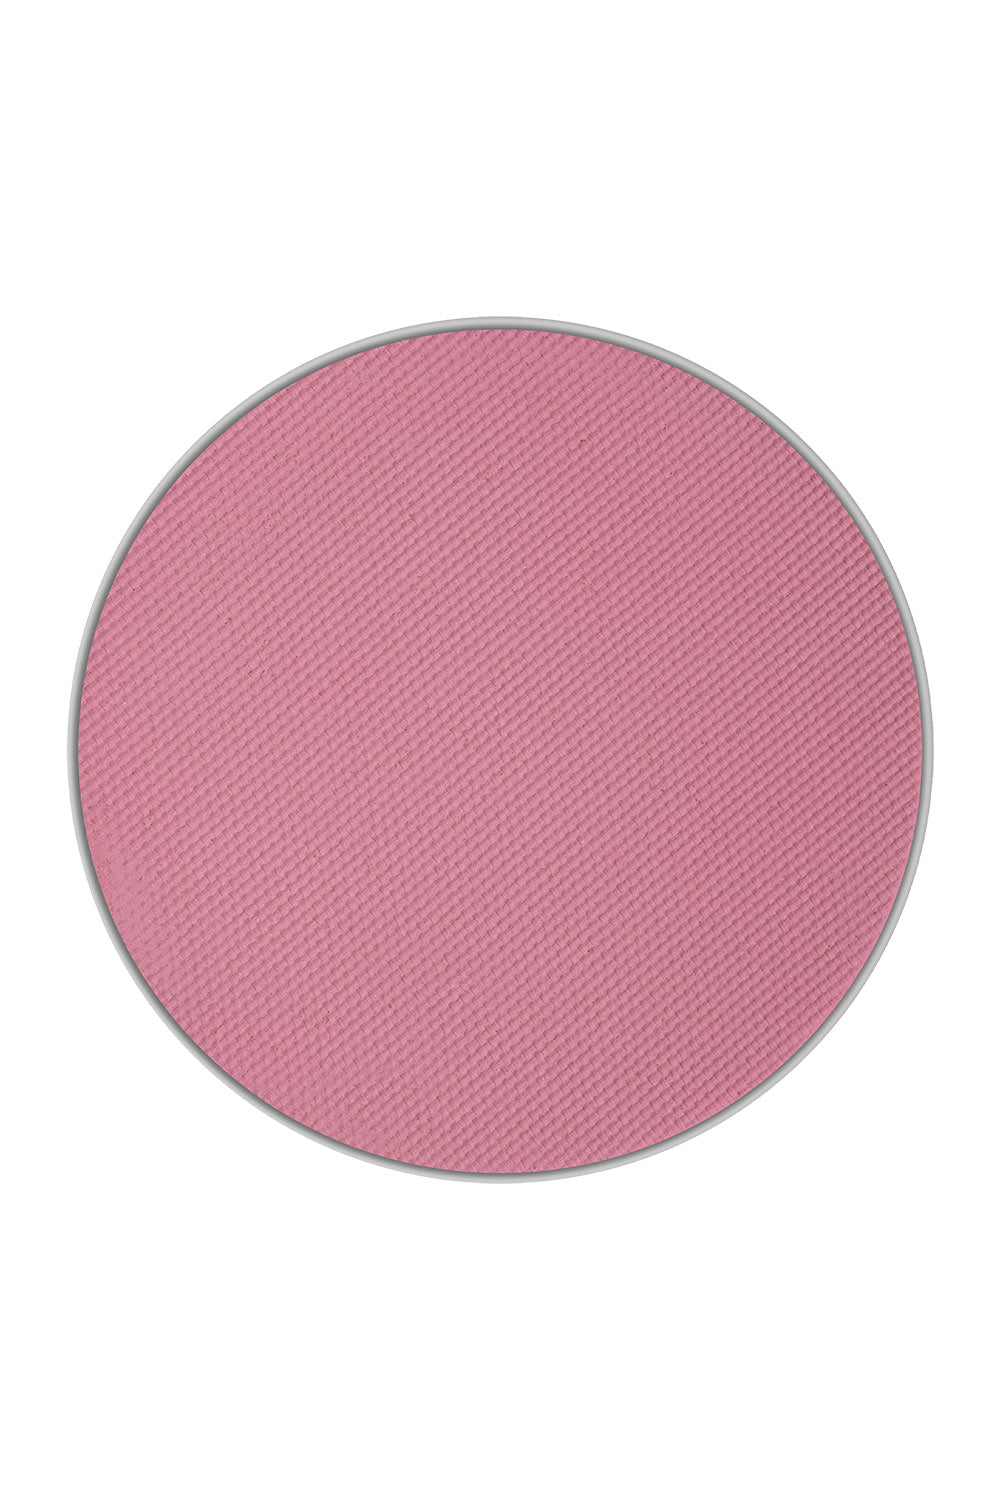 Bella - Type 2 Blush Pan